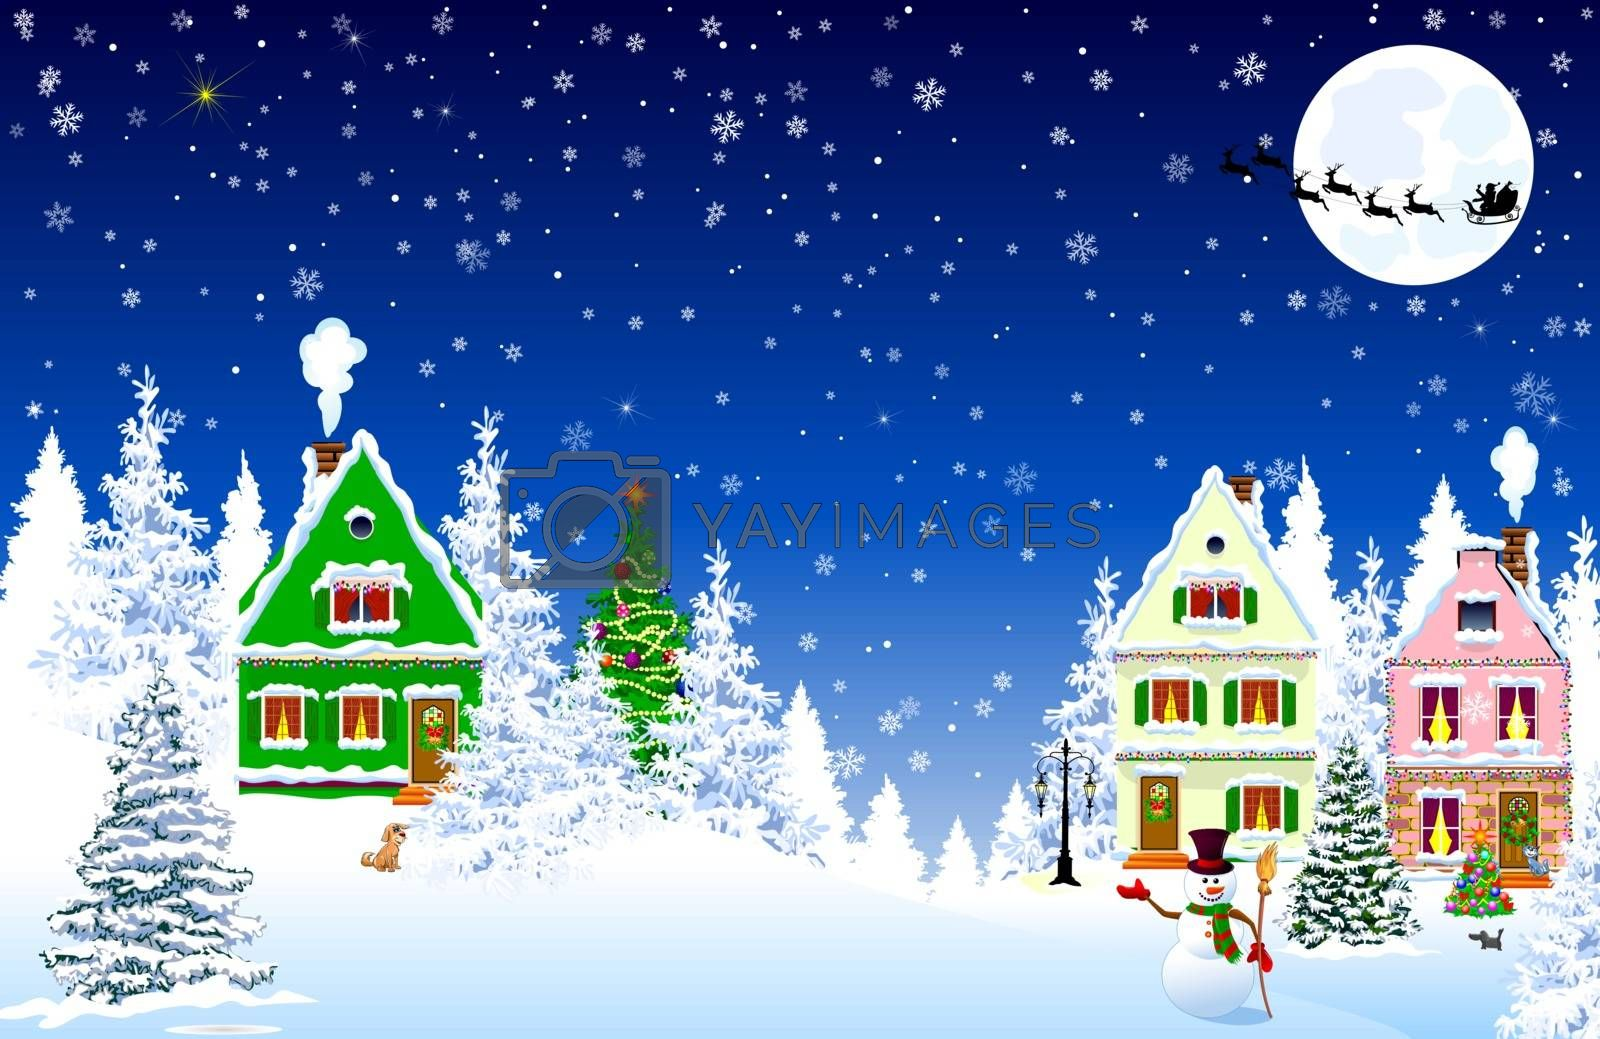 Houses, village, forest, trees. Winter rural landscape. Christmas Eve Night. Snowflakes in the night sky. Santa on a sleigh against the background of the moon. Christmas winter night scene.